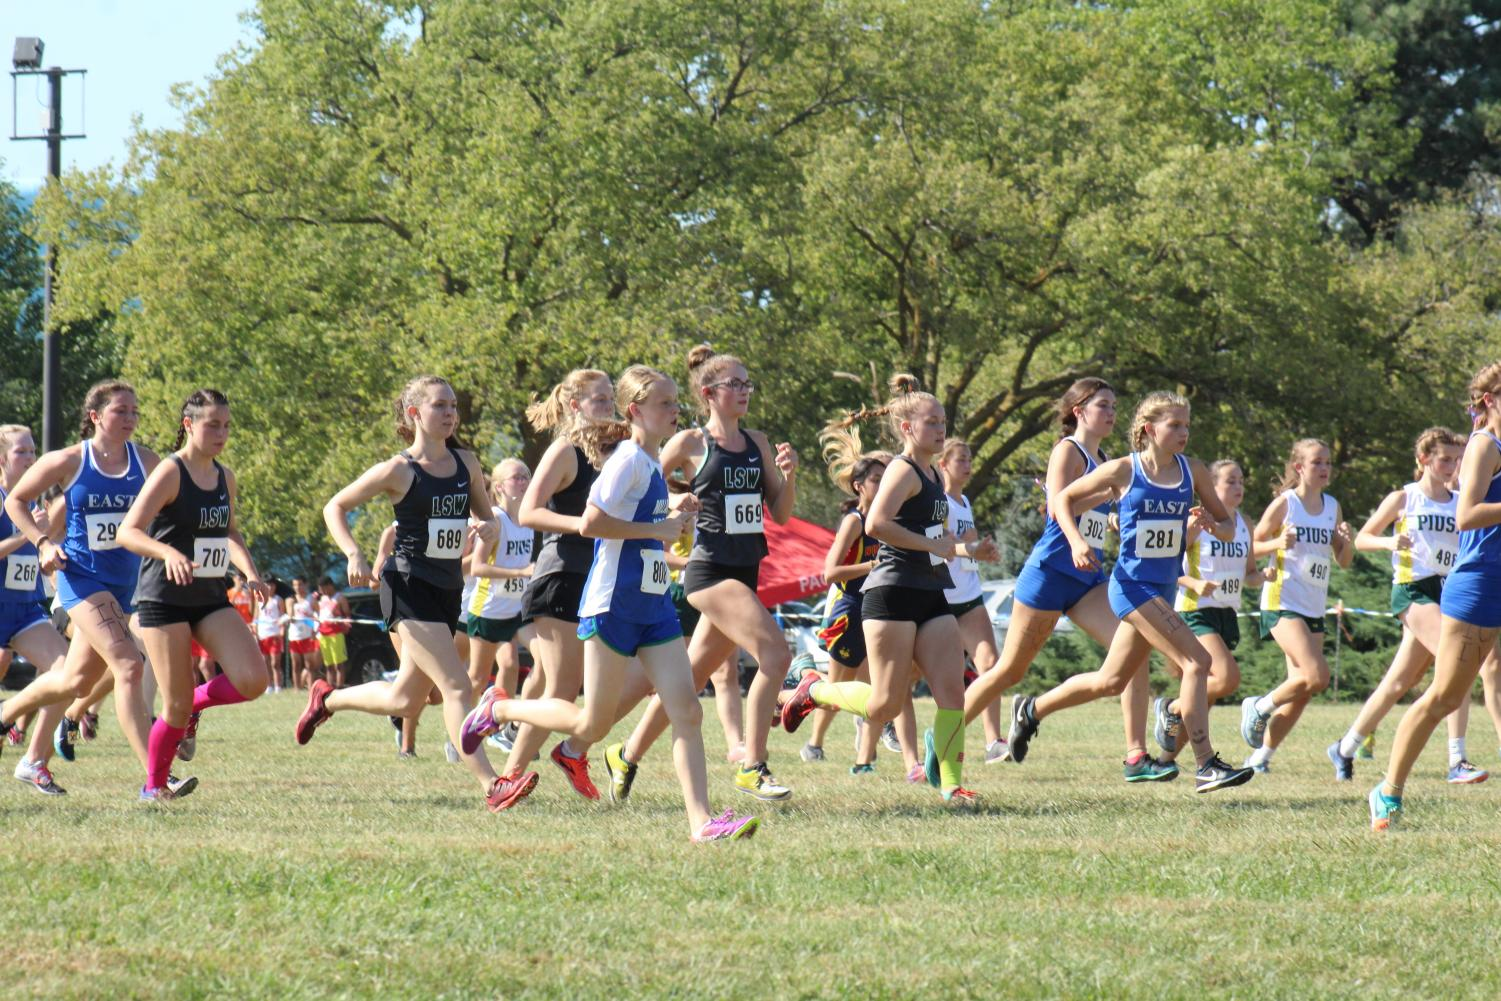 LSW JV girls begin their race at Pioneers Park on Sept. 19. They race again at Pioneers Park at the North Star Invite on Sept. 26.